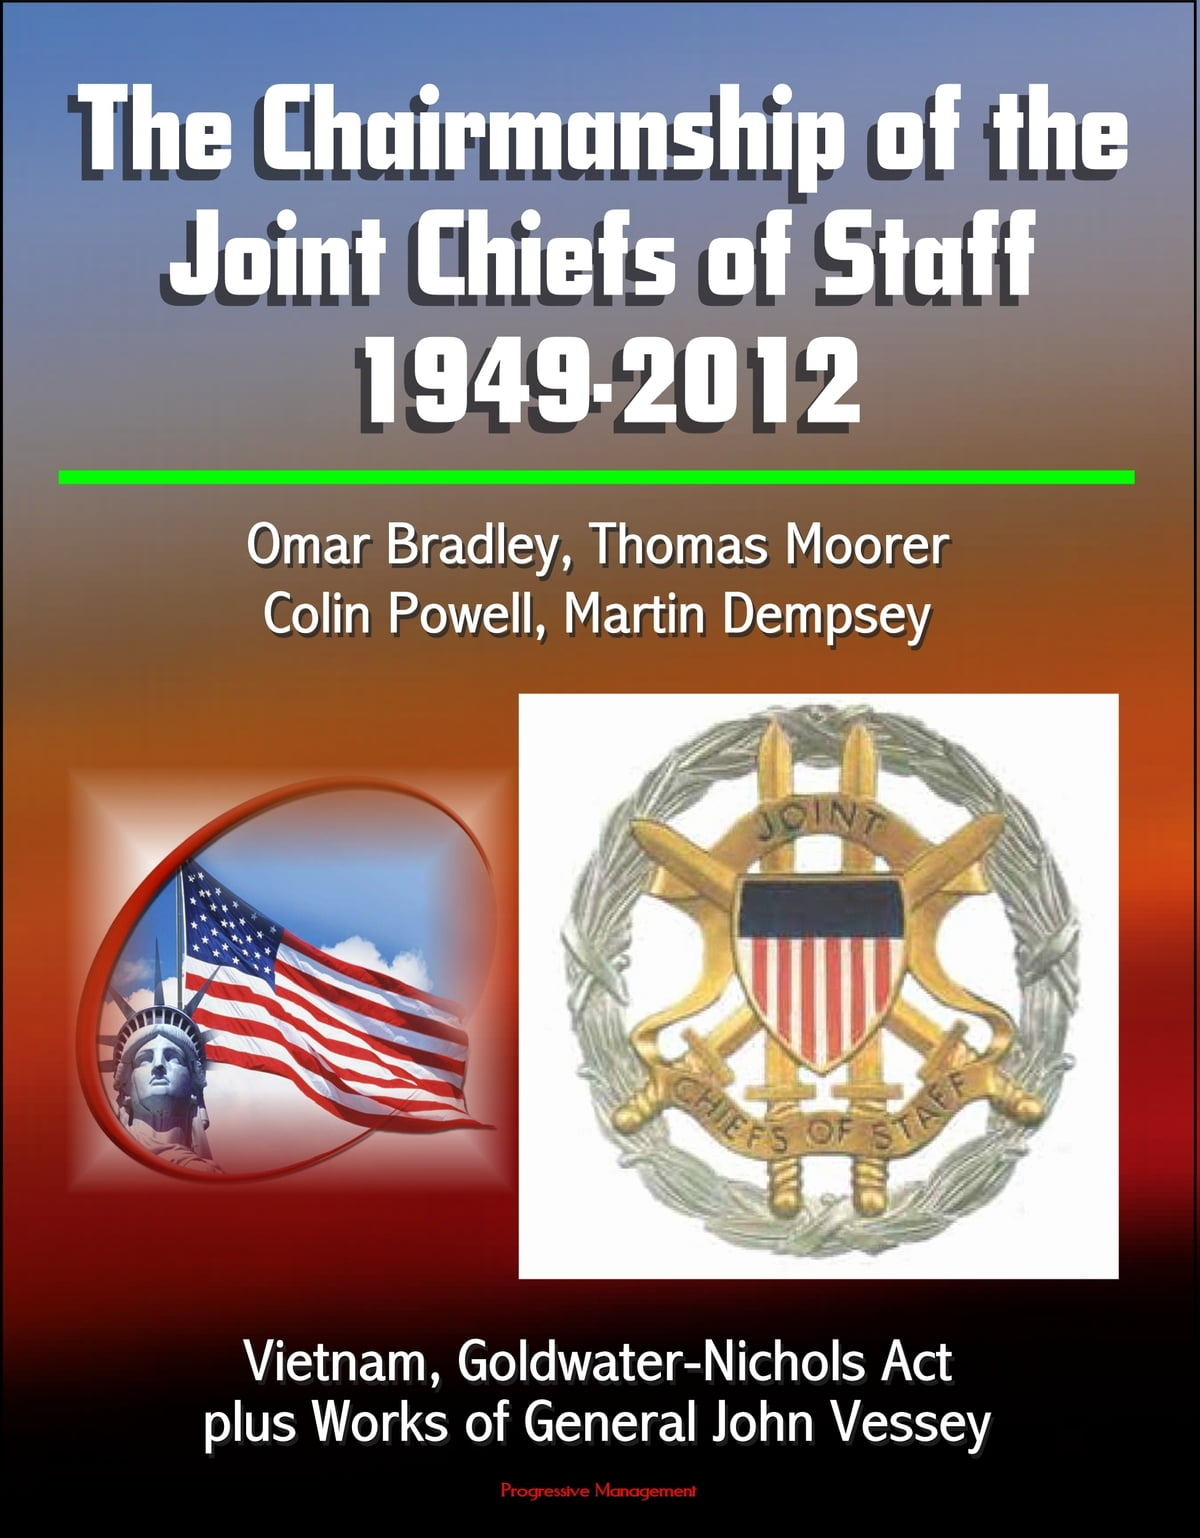 The Chairmanship of the Joint Chiefs of Staff: 1949-2012, Omar Bradley,  Thomas Moorer, Colin Powell, Martin Dempsey, Vietnam, Goldwater-Nichols  Act,